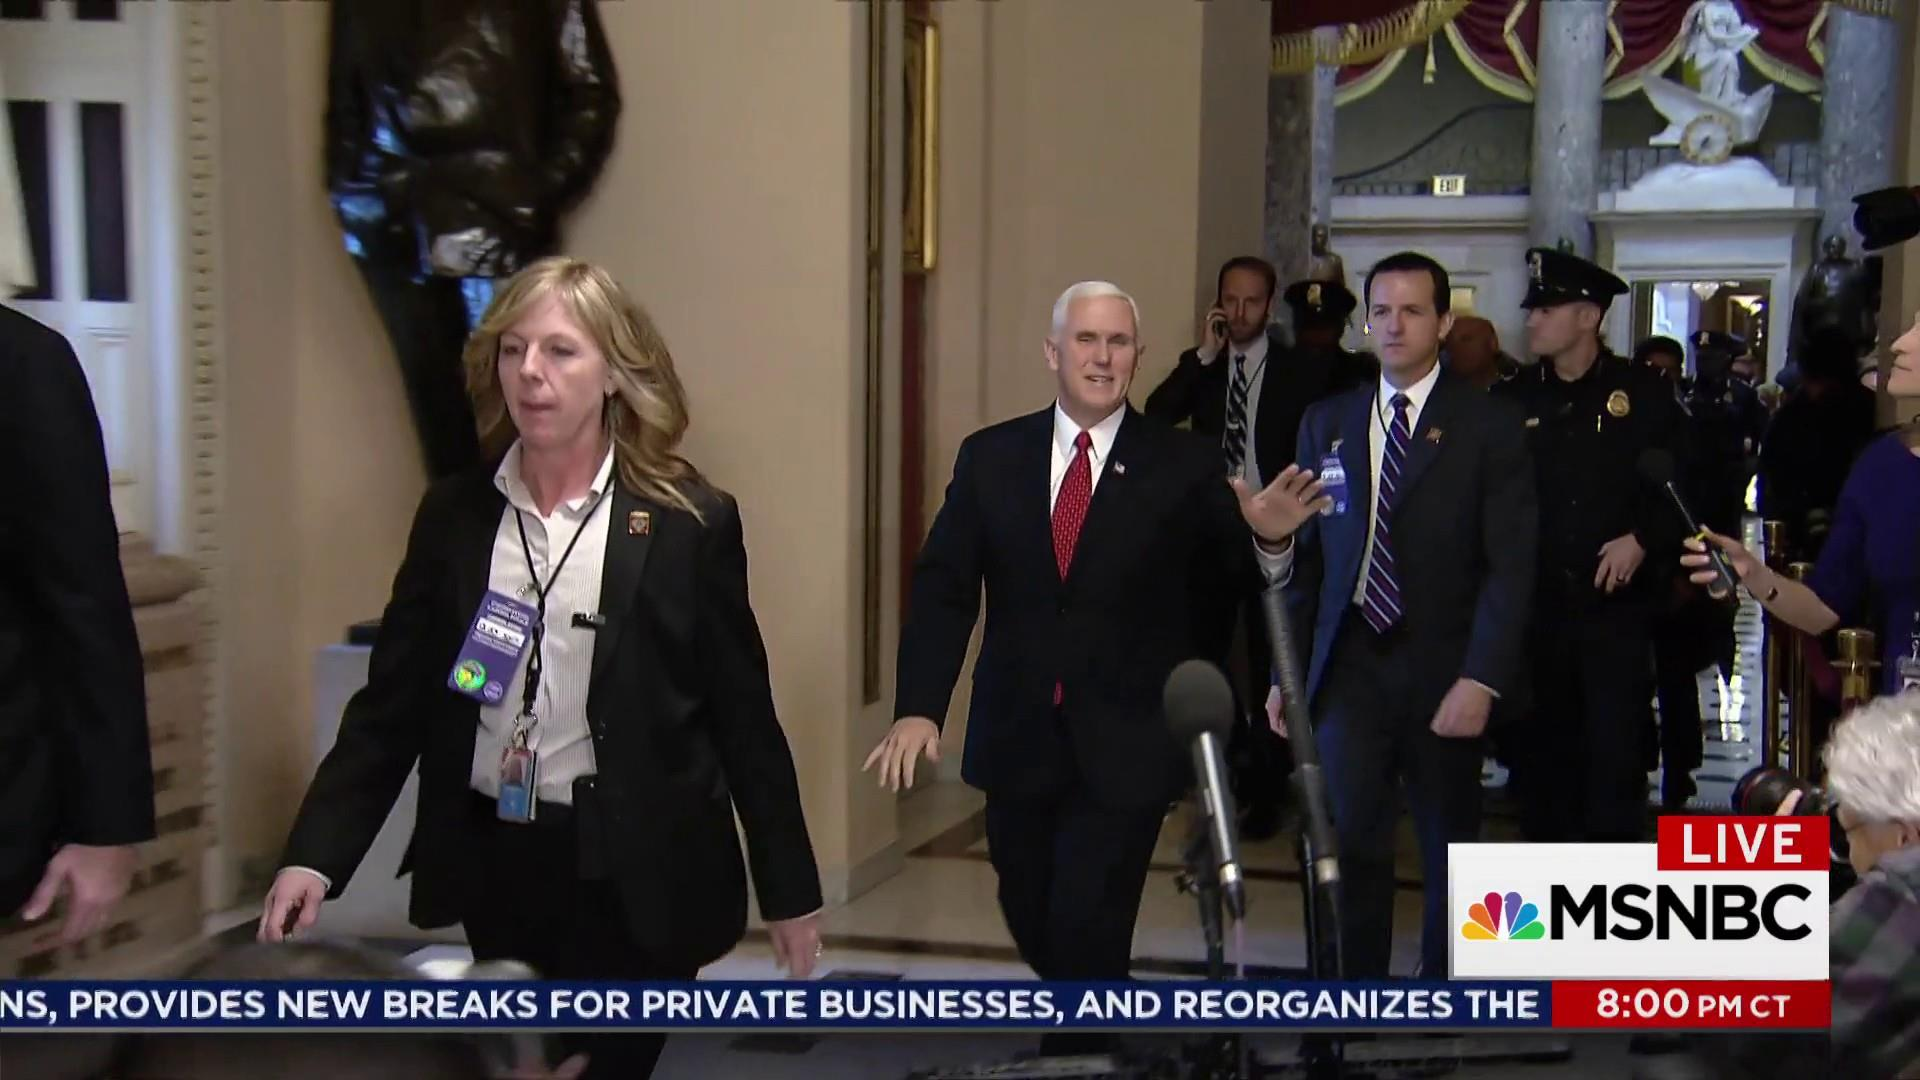 Tax vote a handy excuse for Mike Pence